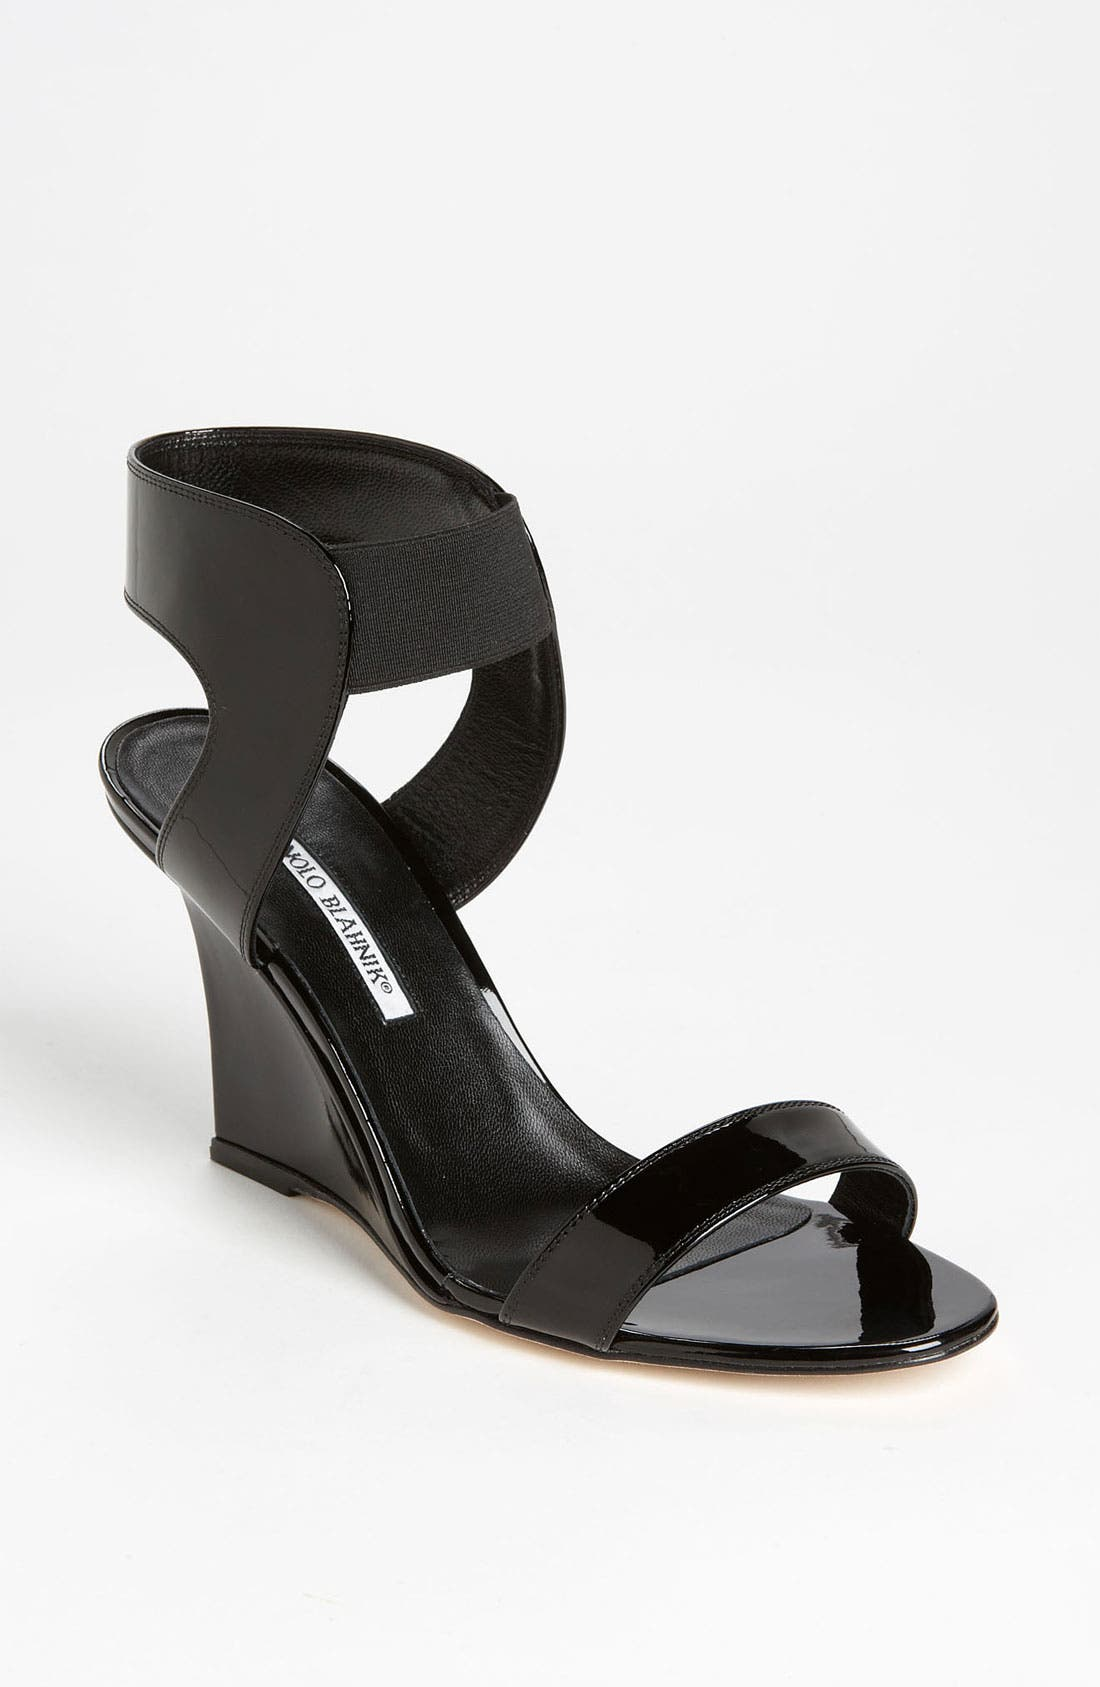 Alternate Image 1 Selected - Manolo Blahnik 'Pepe' Wedge Sandal